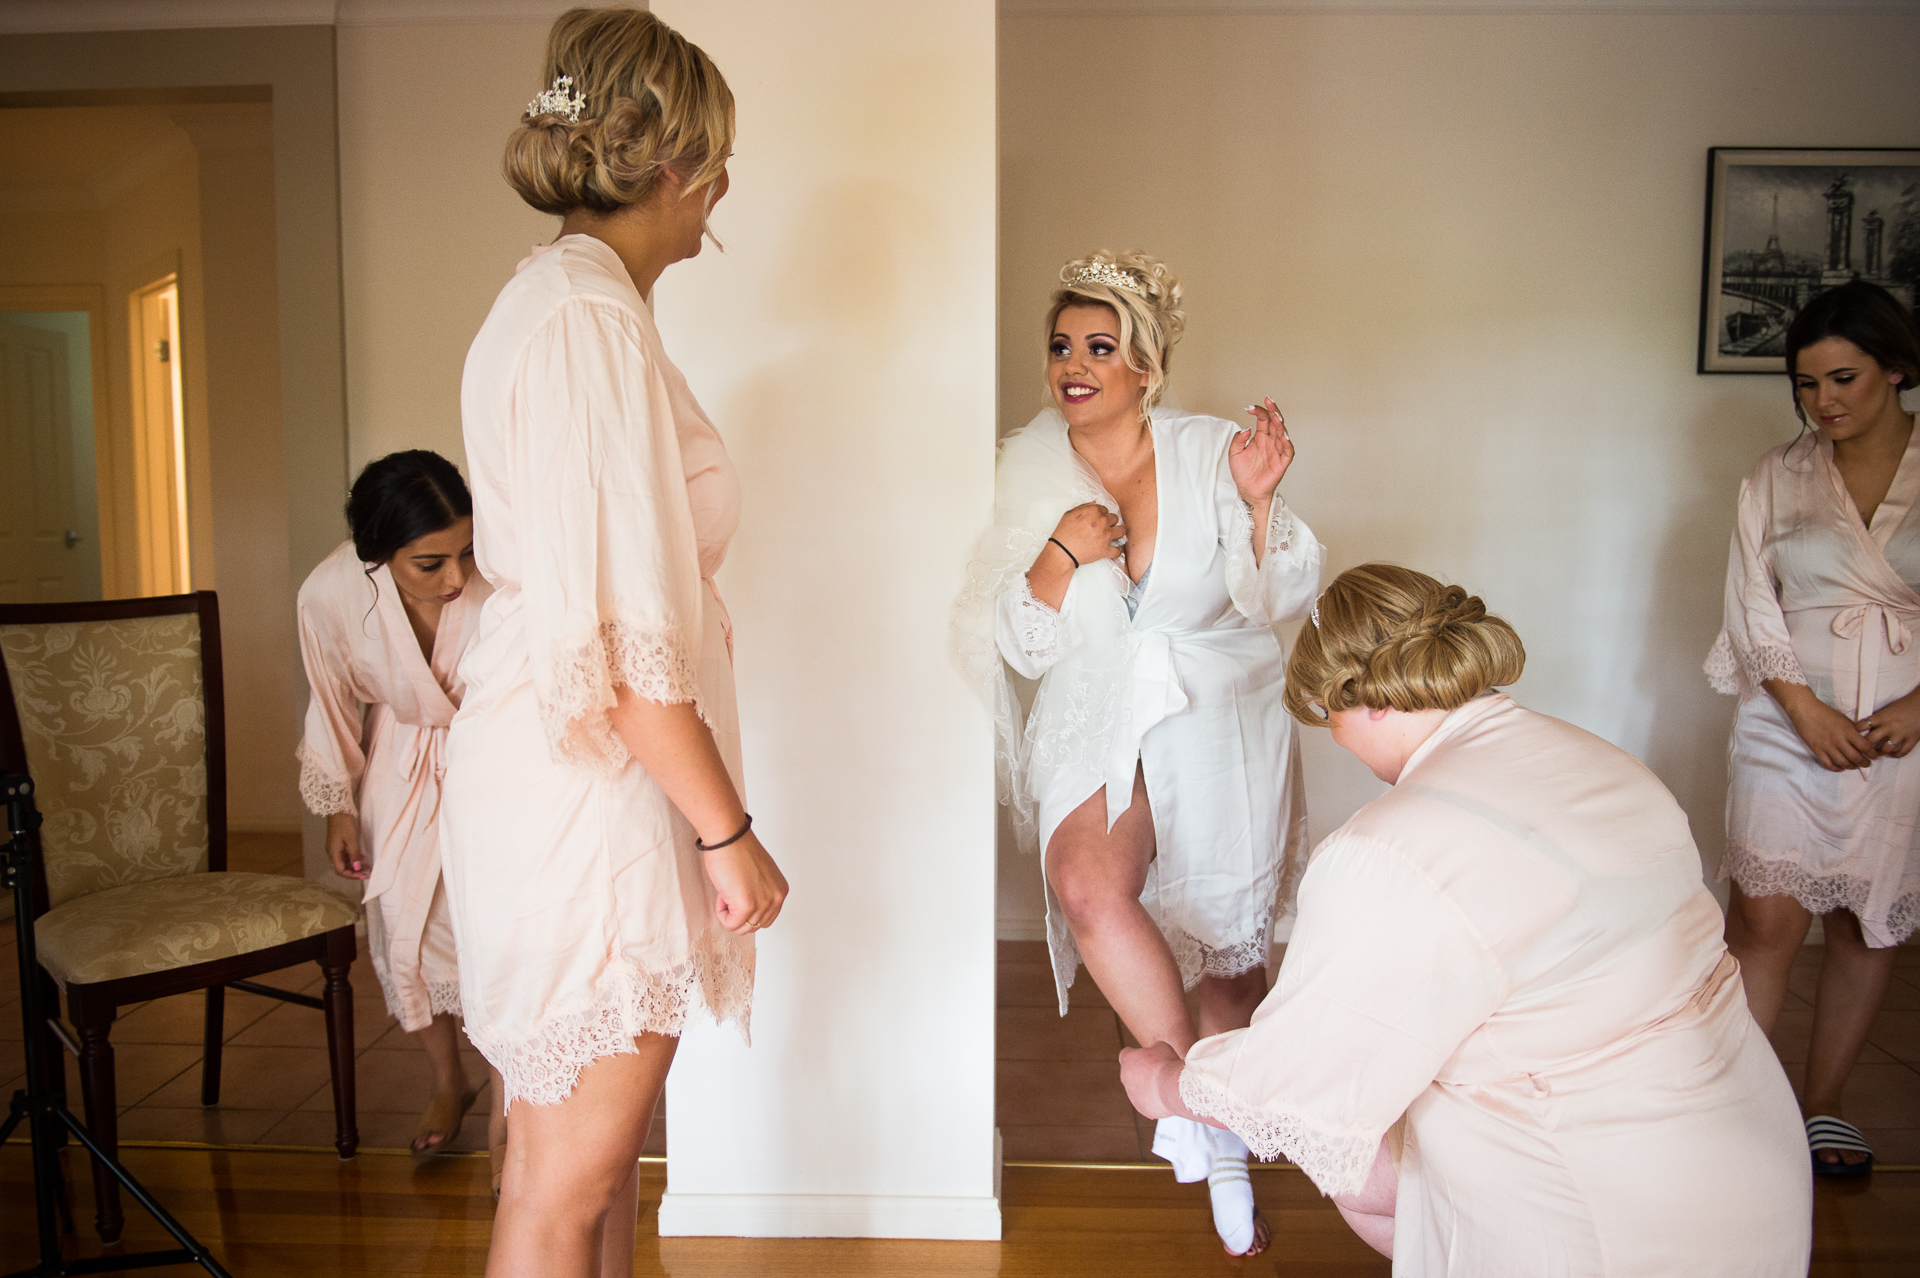 Photo of the bride as she is laughing with her bridesmaids and relatives while putting on socks before the wedding.